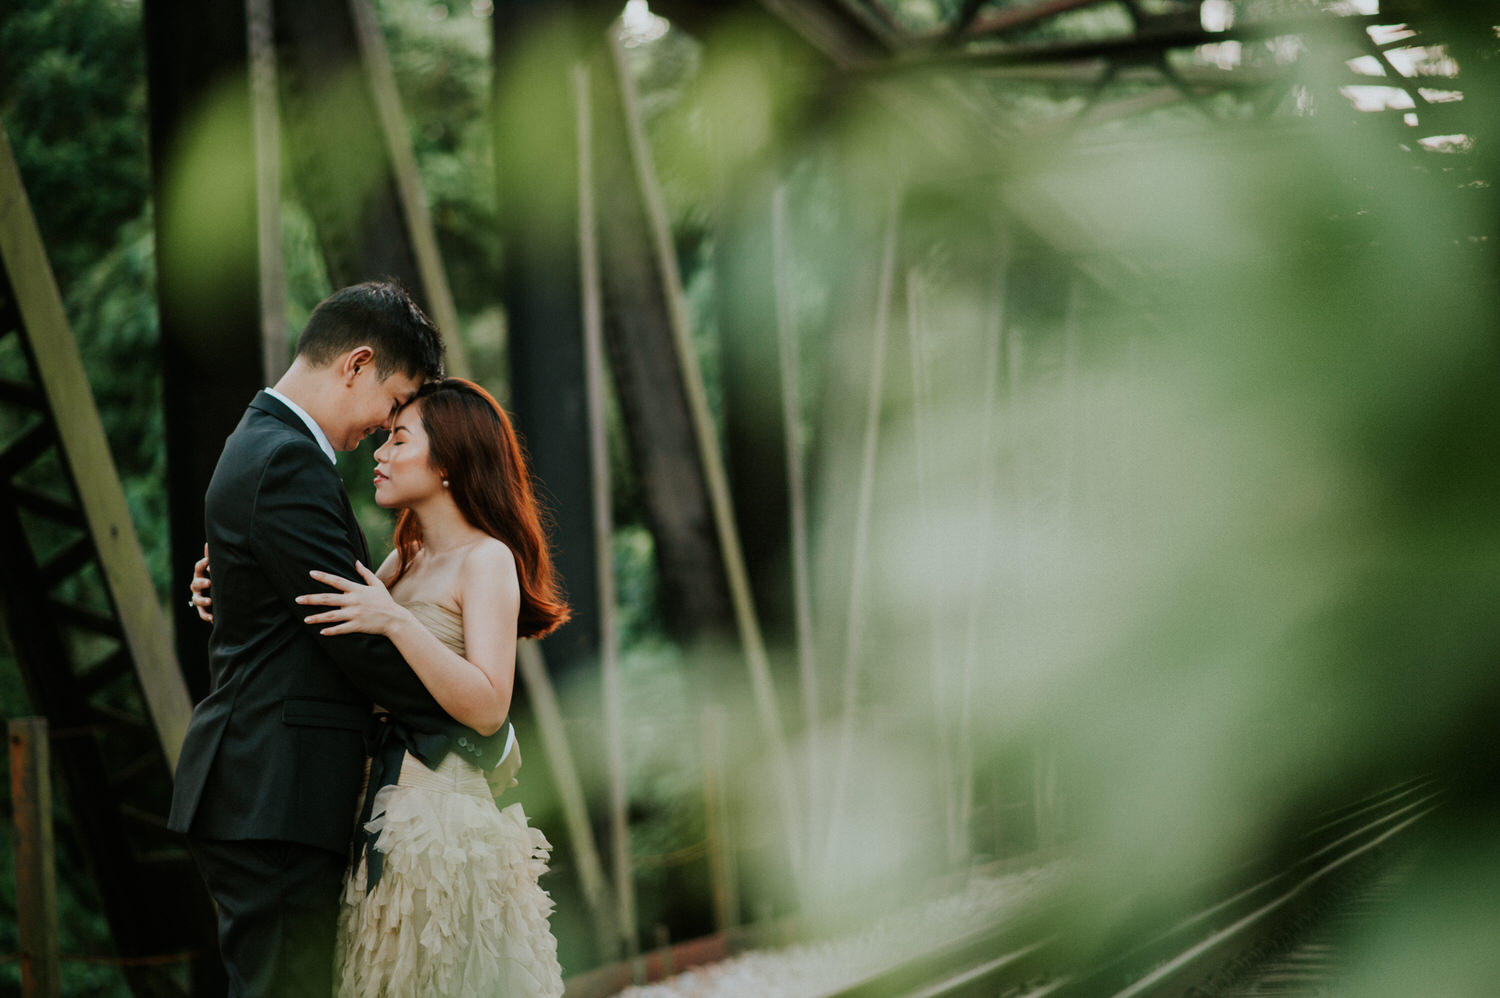 singapore prewedding destination - singapore wedding - diktatphotography - kadek artayasa - nikole + ardika - 44